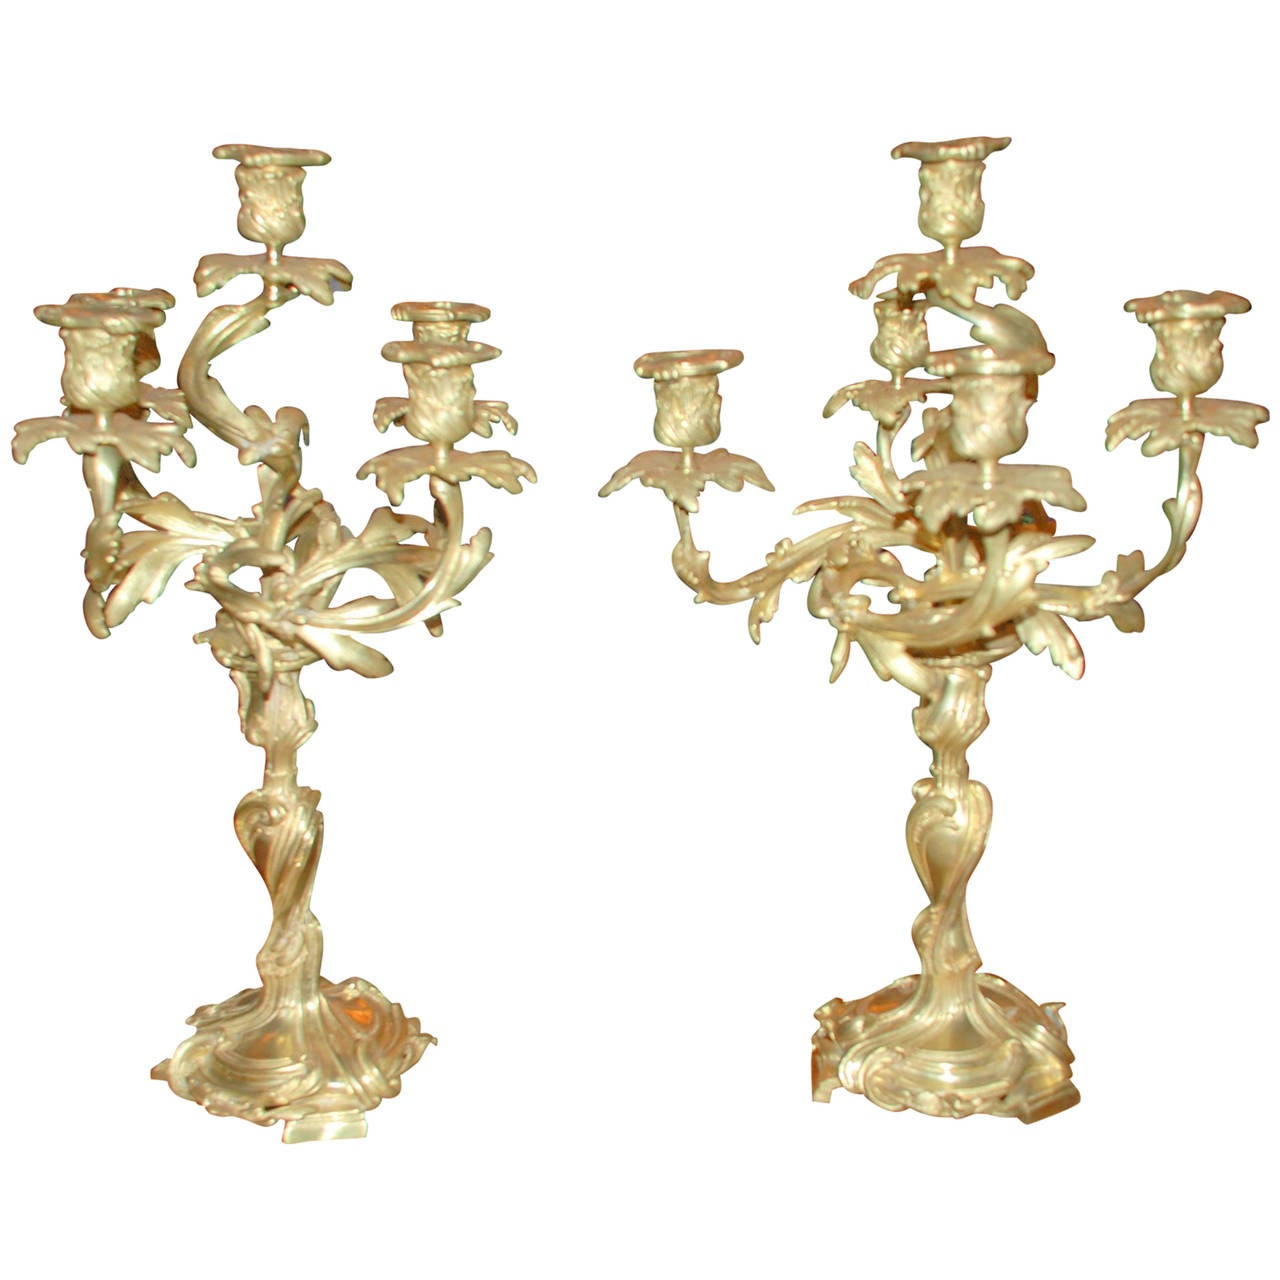 Decorative Candles For Sale Antique Candelabra For Sale At 1stdibs